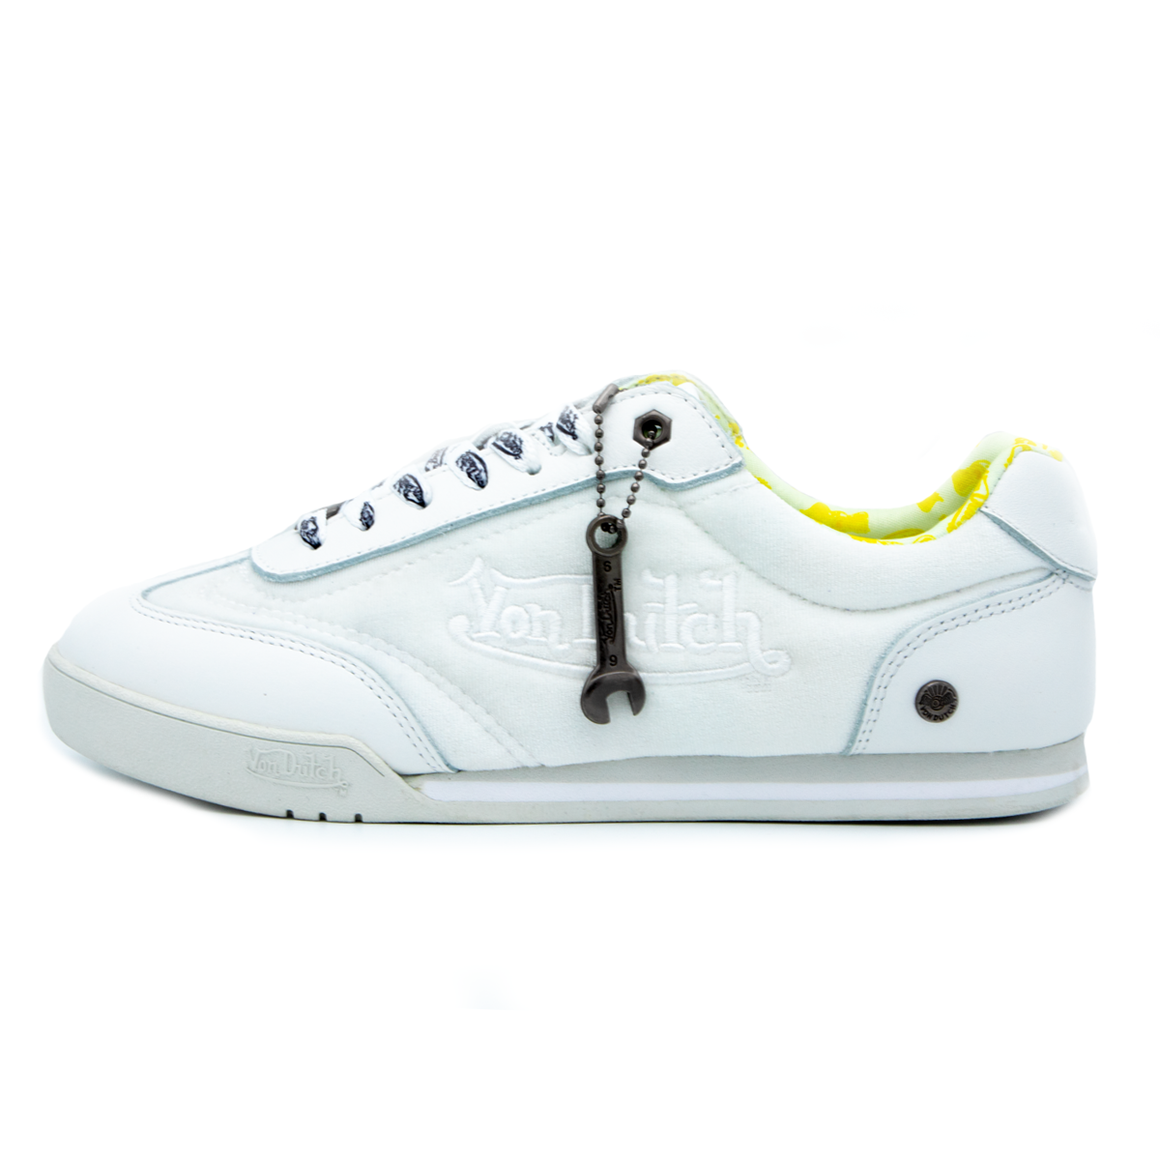 Men's Velvet Vanderdutch Sneaker Yellow Snow